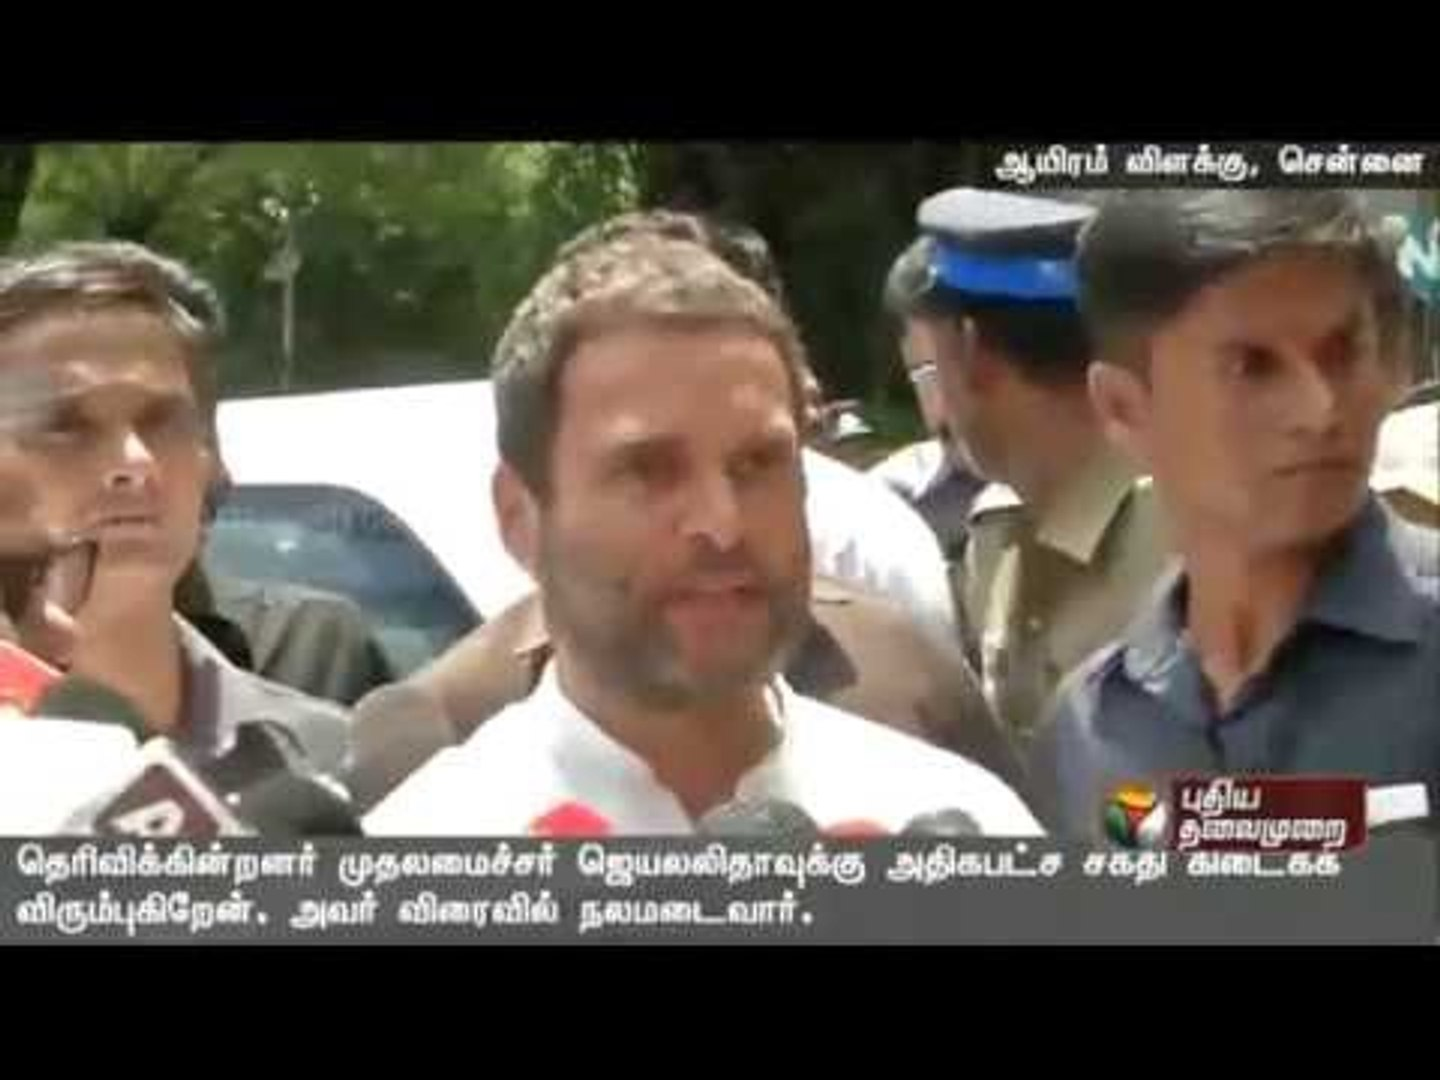 Rahul Gandhi pays an unscheduled visit to the hospital where the CM is under treatment